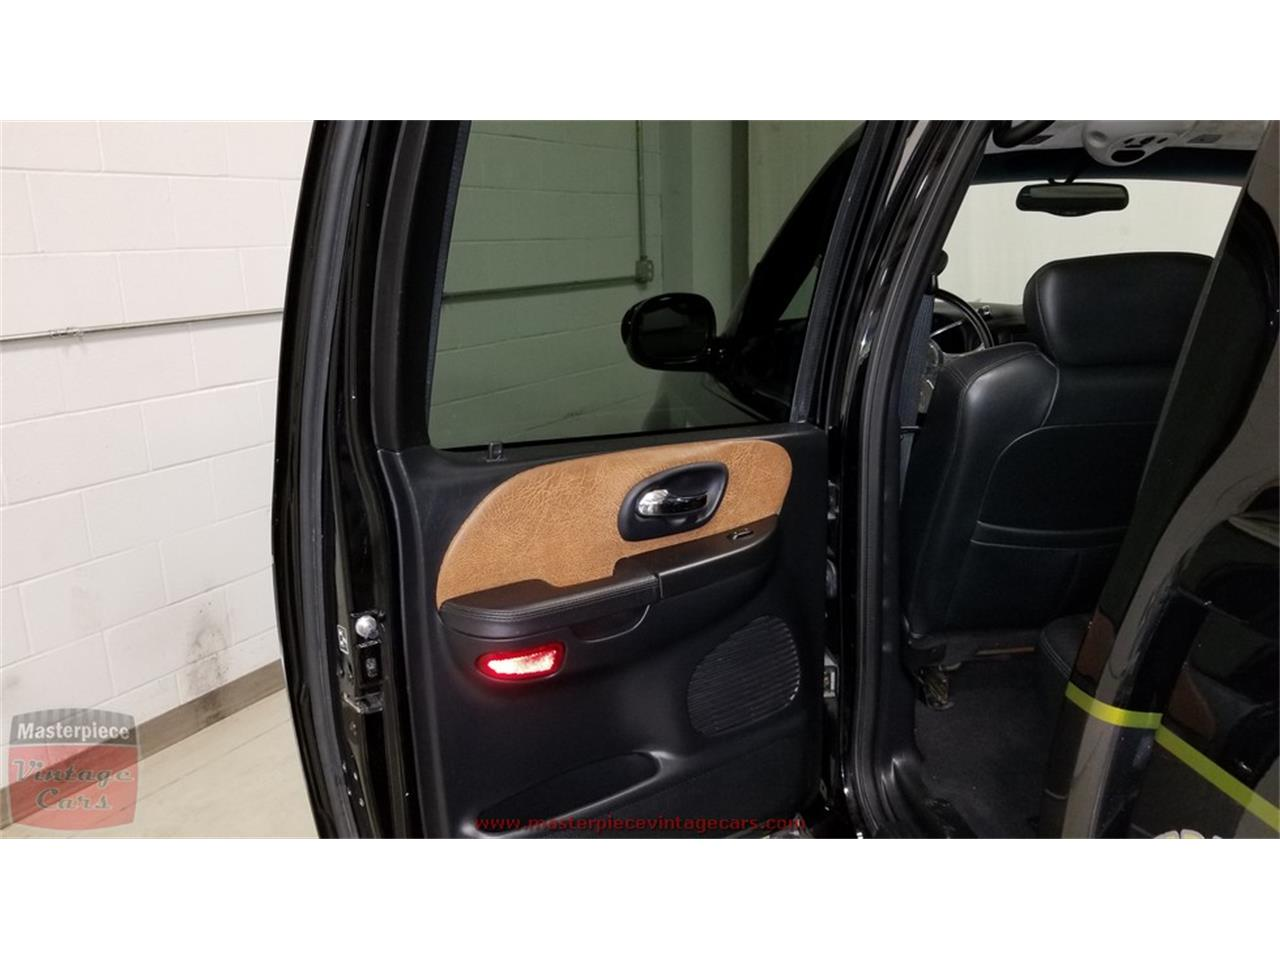 Large Picture of '03 Ford F150 - $29,900.00 Offered by Masterpiece Vintage Cars - PWFY